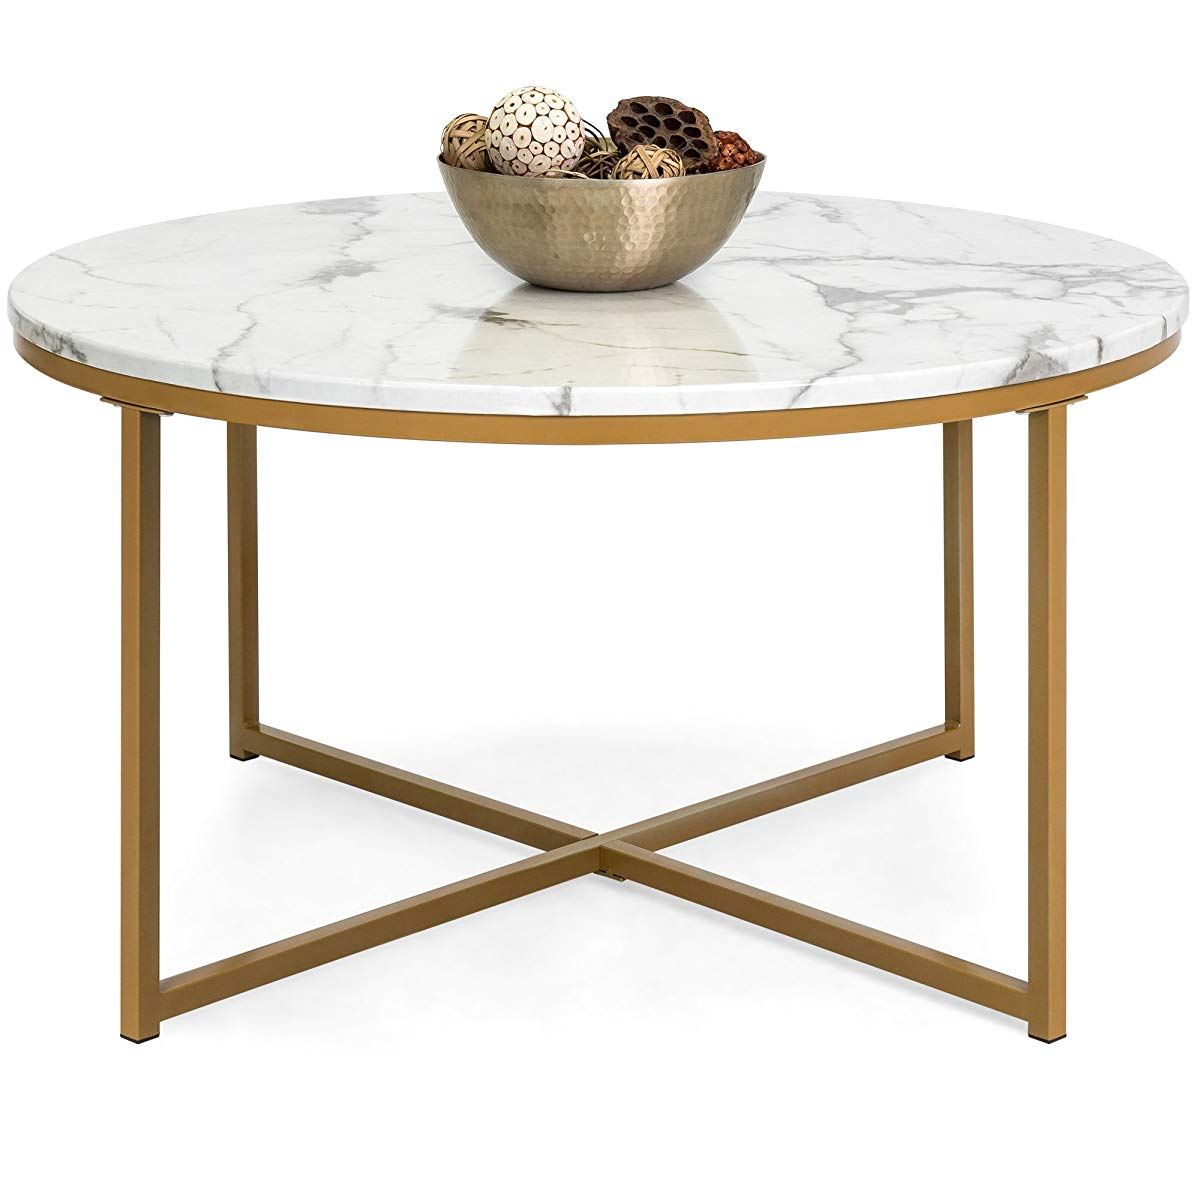 best choice products modern living room round faux marble top white gold accent table coffee side metal legs floor threshold transitions outdoor kitchen chairs wood and hairpin